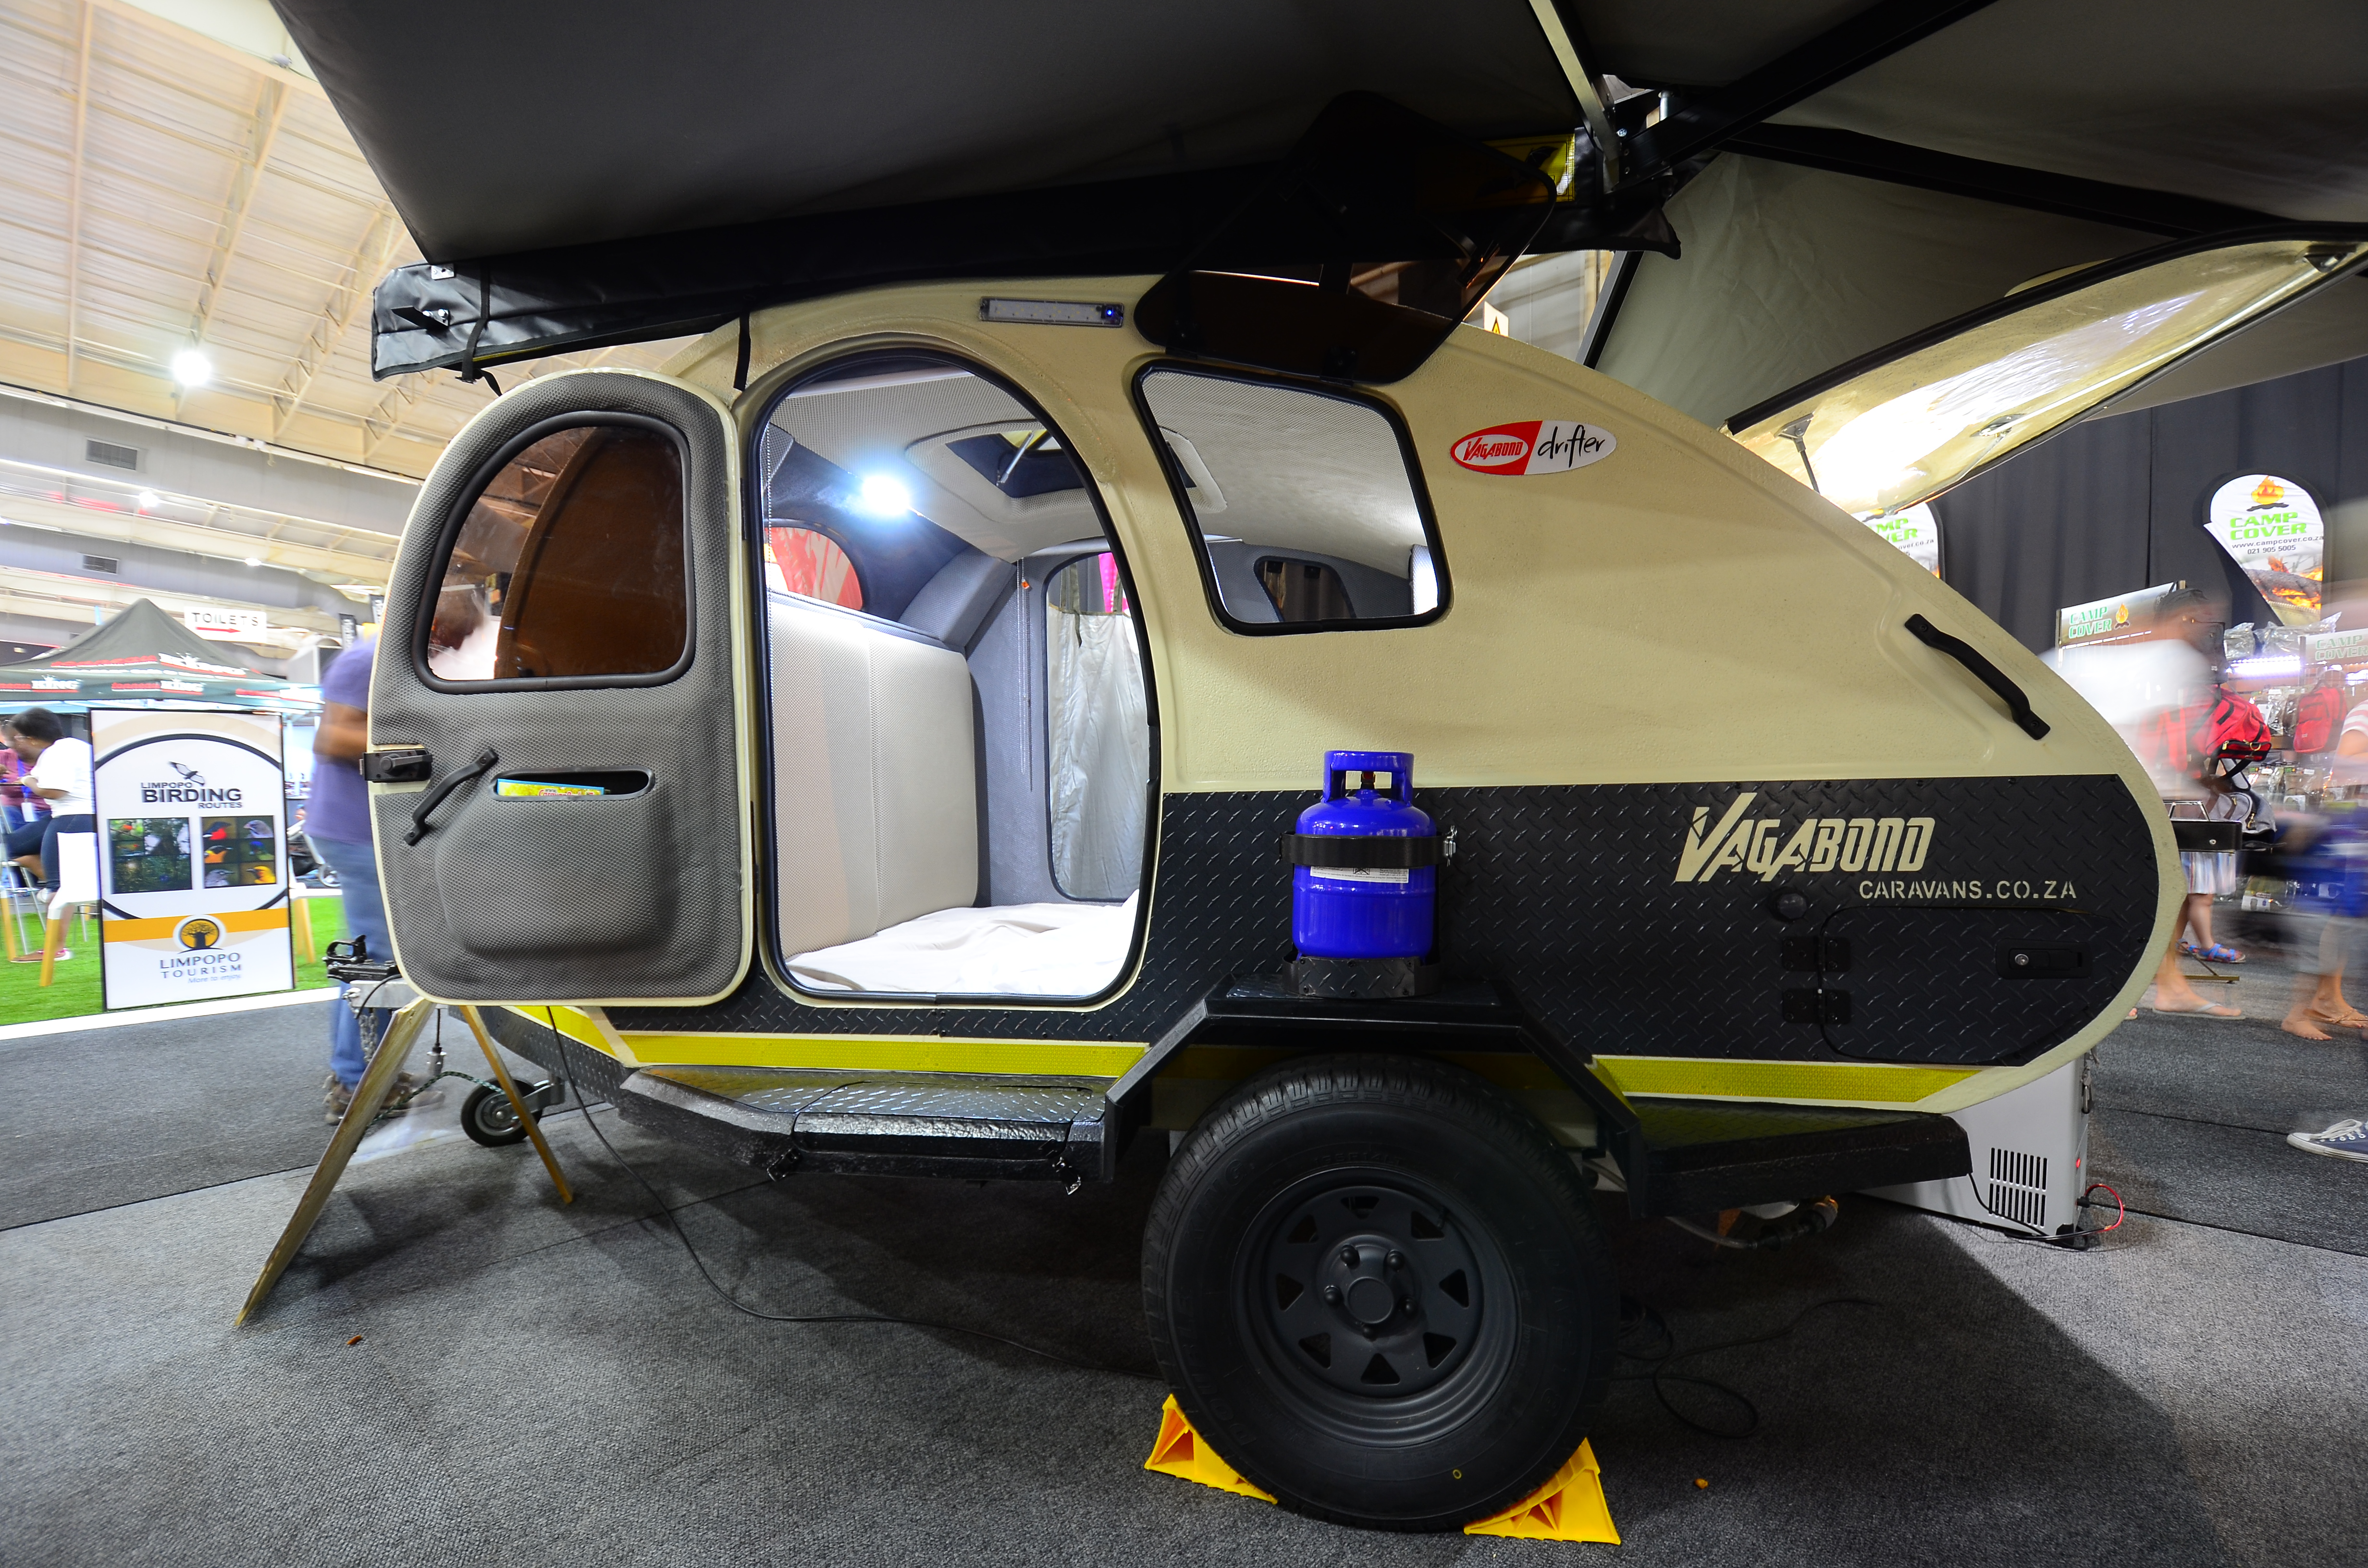 Vagabond teardrop's new look - Caravan & Outdoor Life magazine